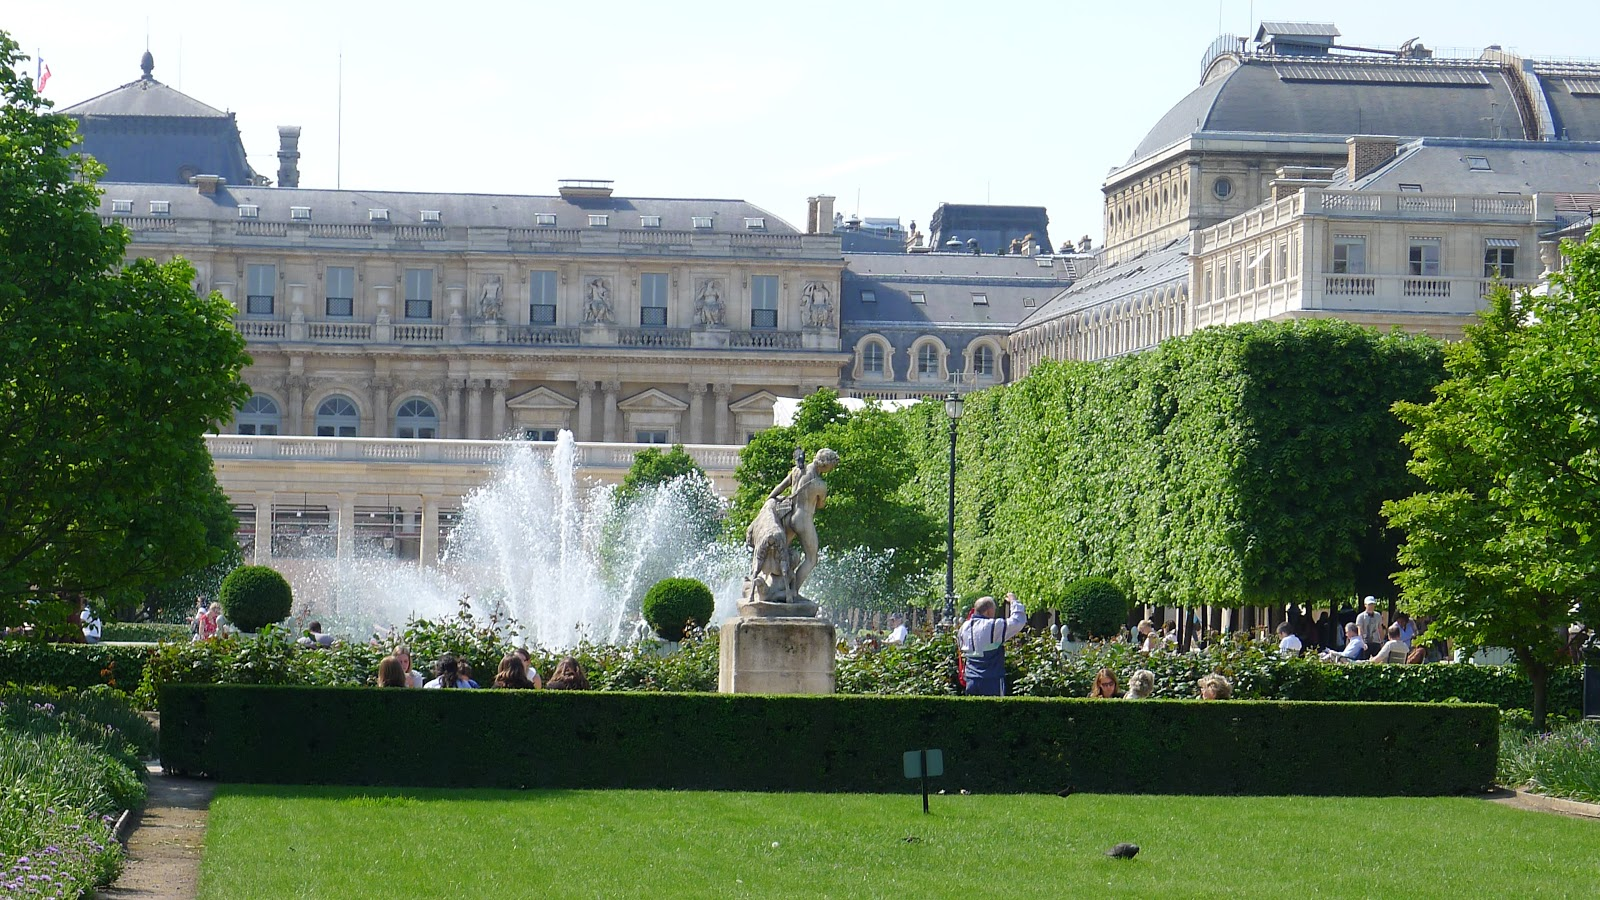 Jardin du palais royal a restful retreat near the louvre for Jardin royal